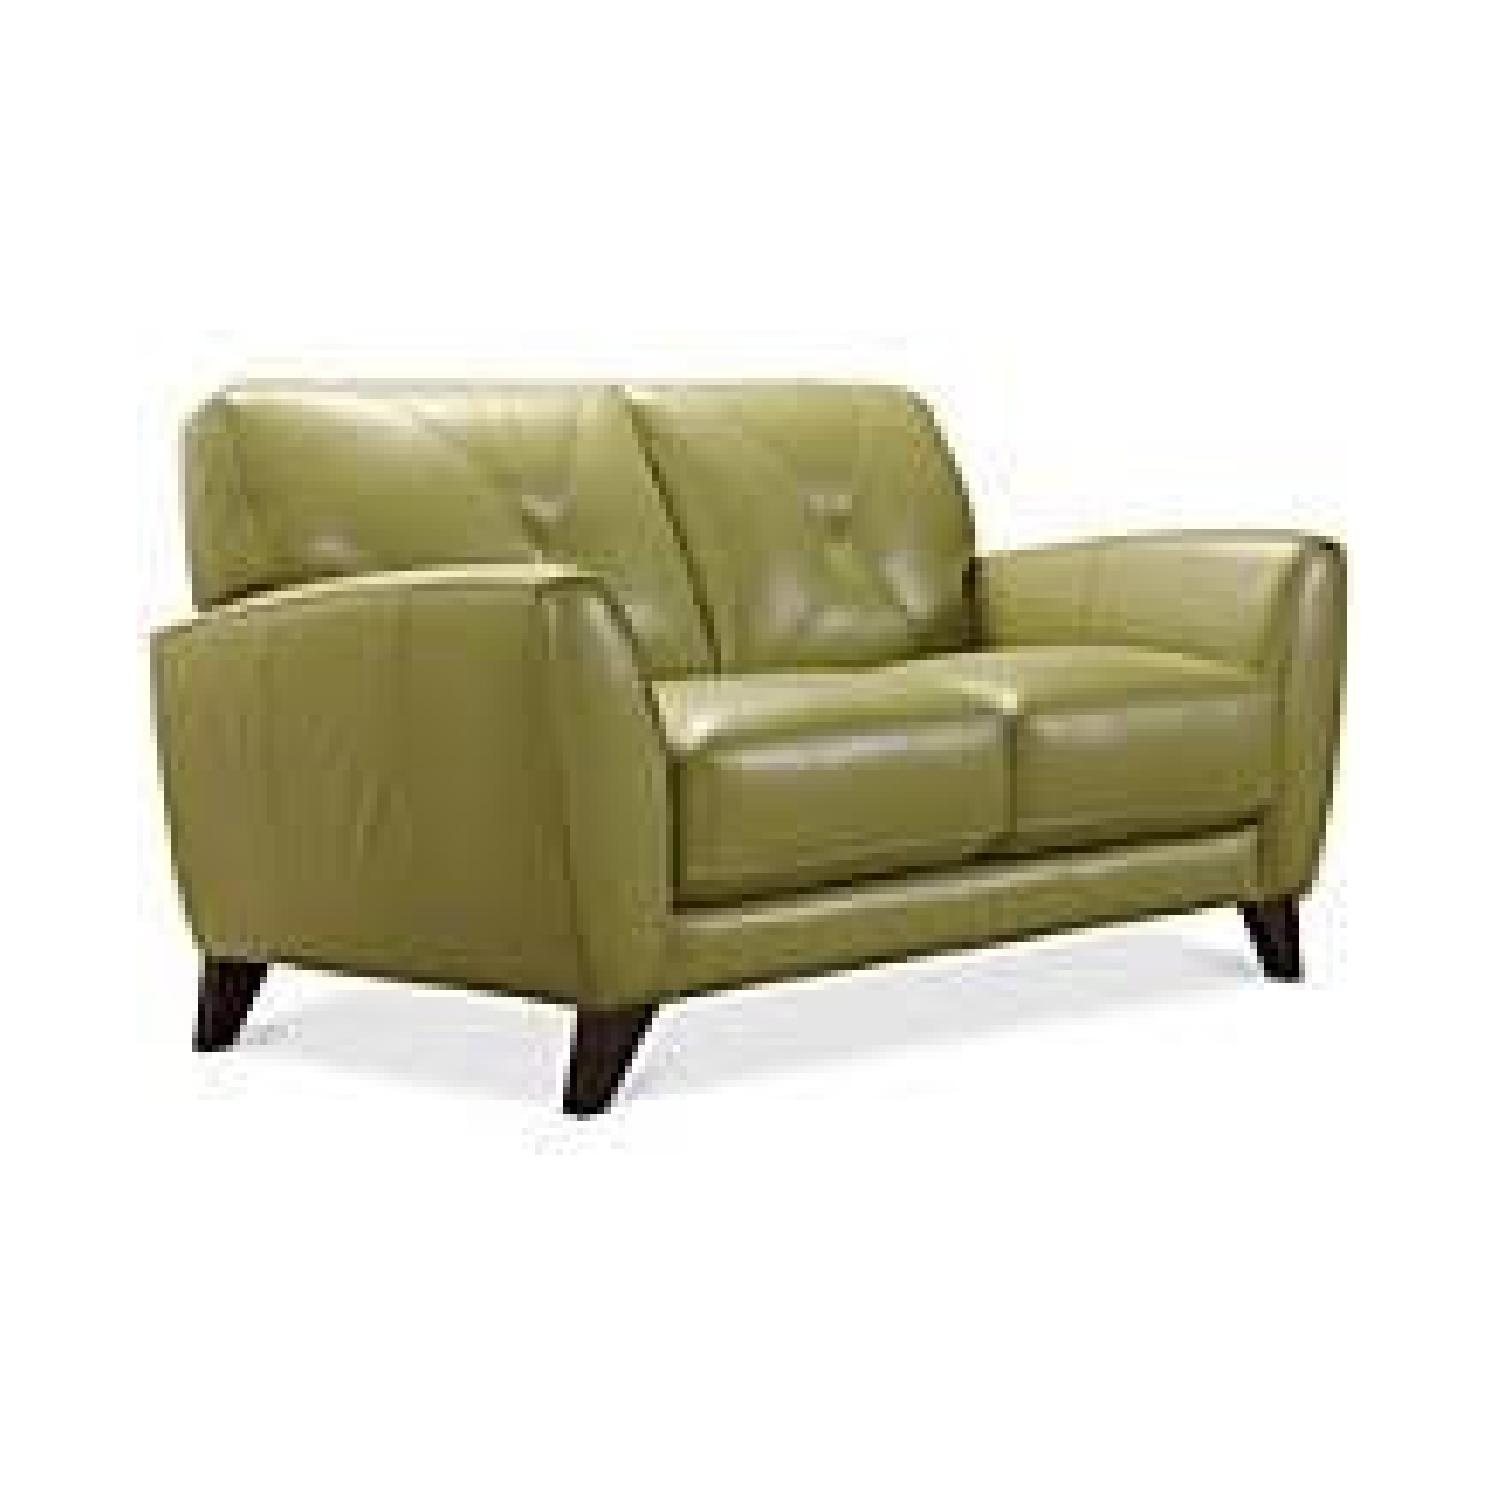 Macy's light Green Leather Couch - image-5